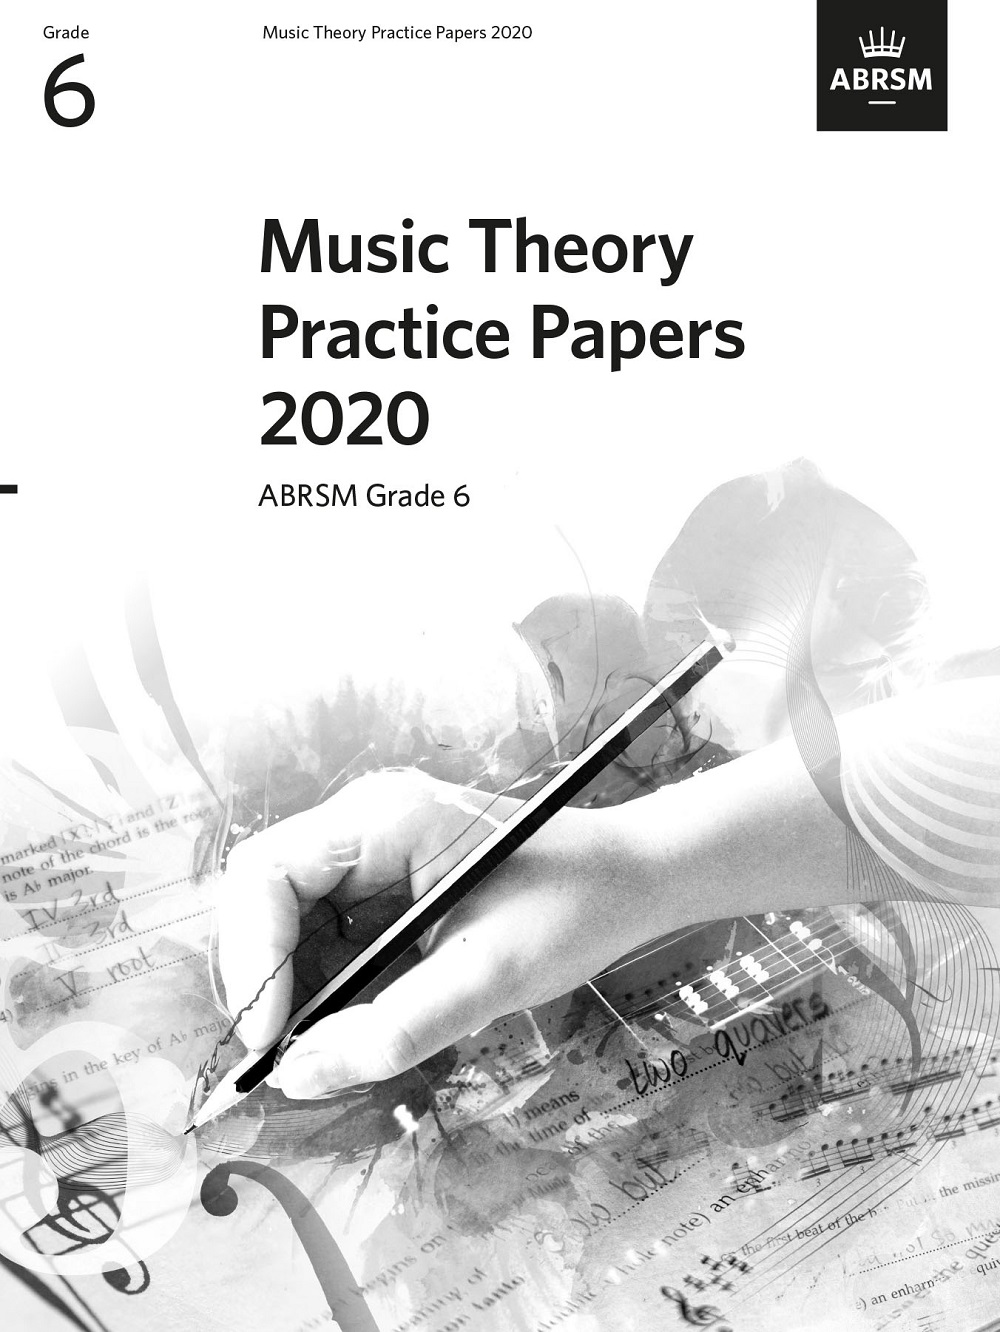 Music Theory Practice Papers 2020 Grade 6: Theory